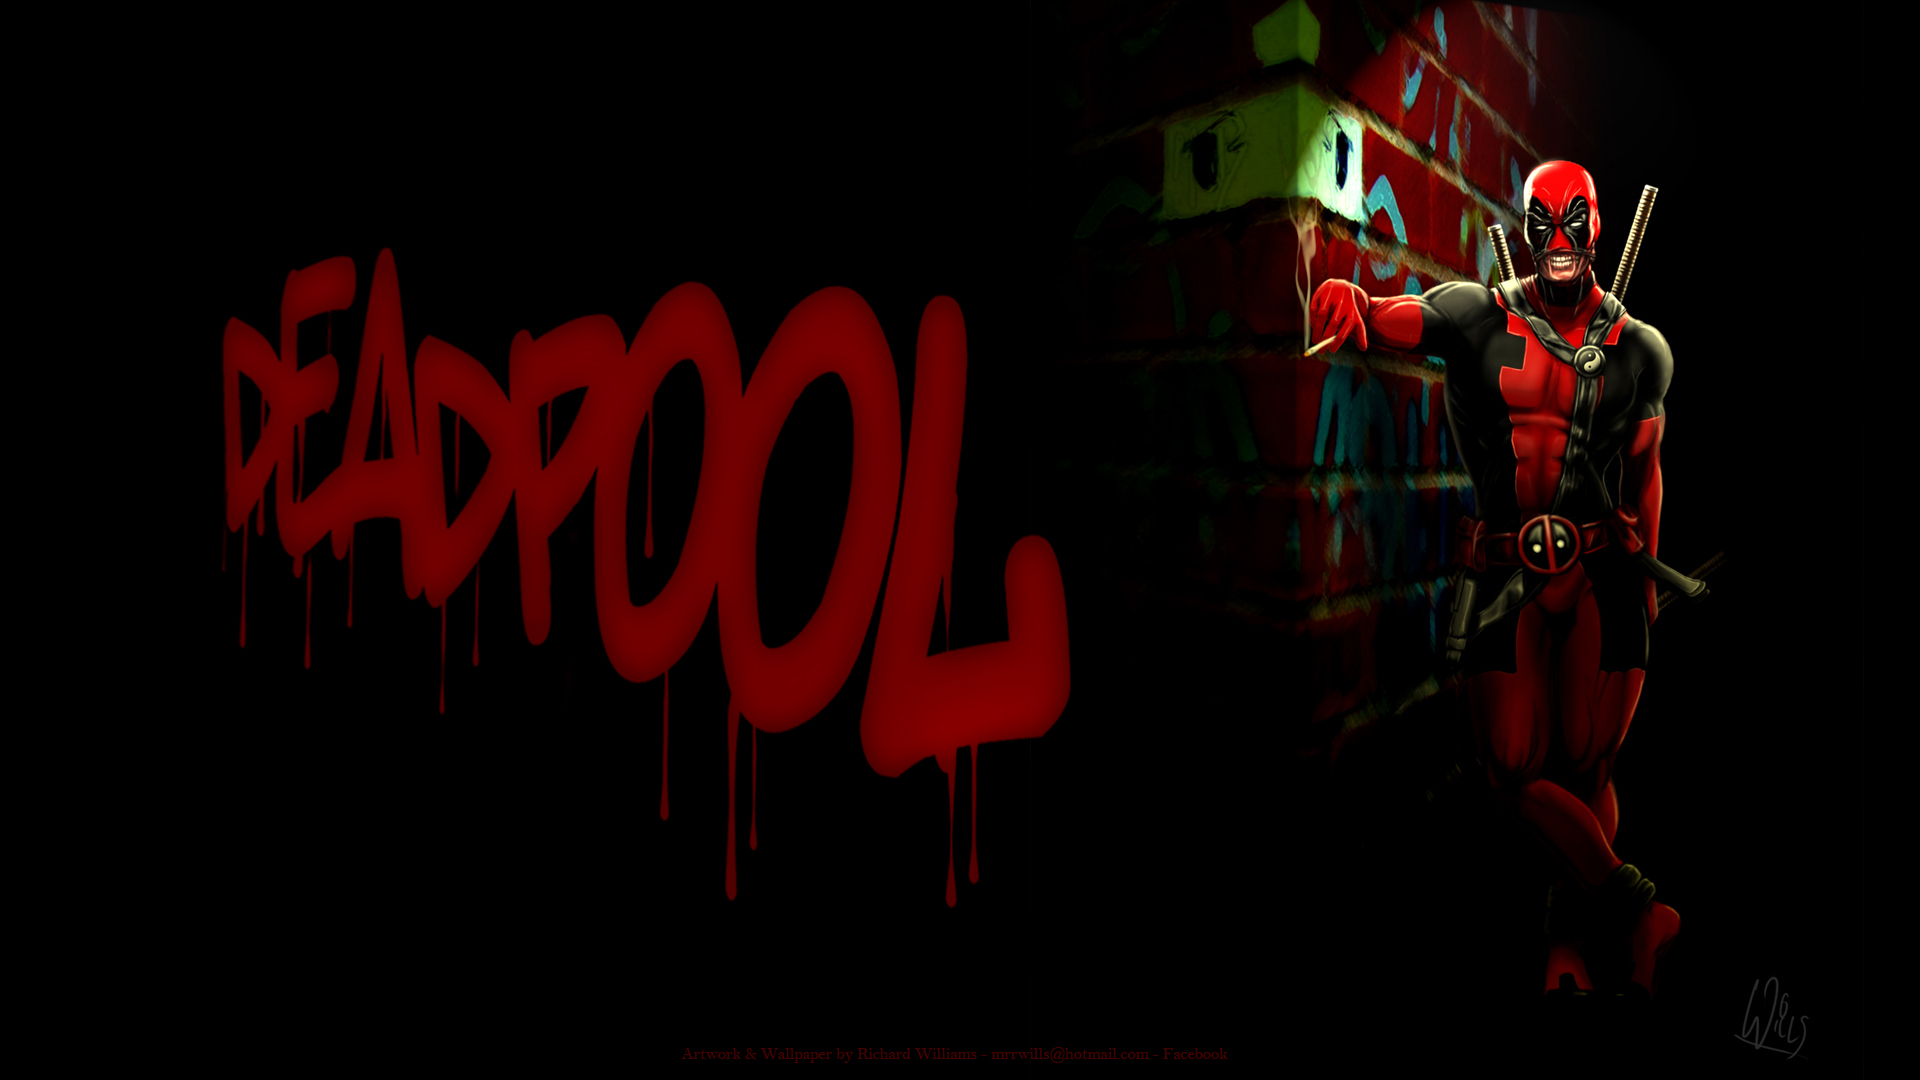 Deadpool Wallpaper Cool Resolution 0cr7119c Yoanu 1920x1080